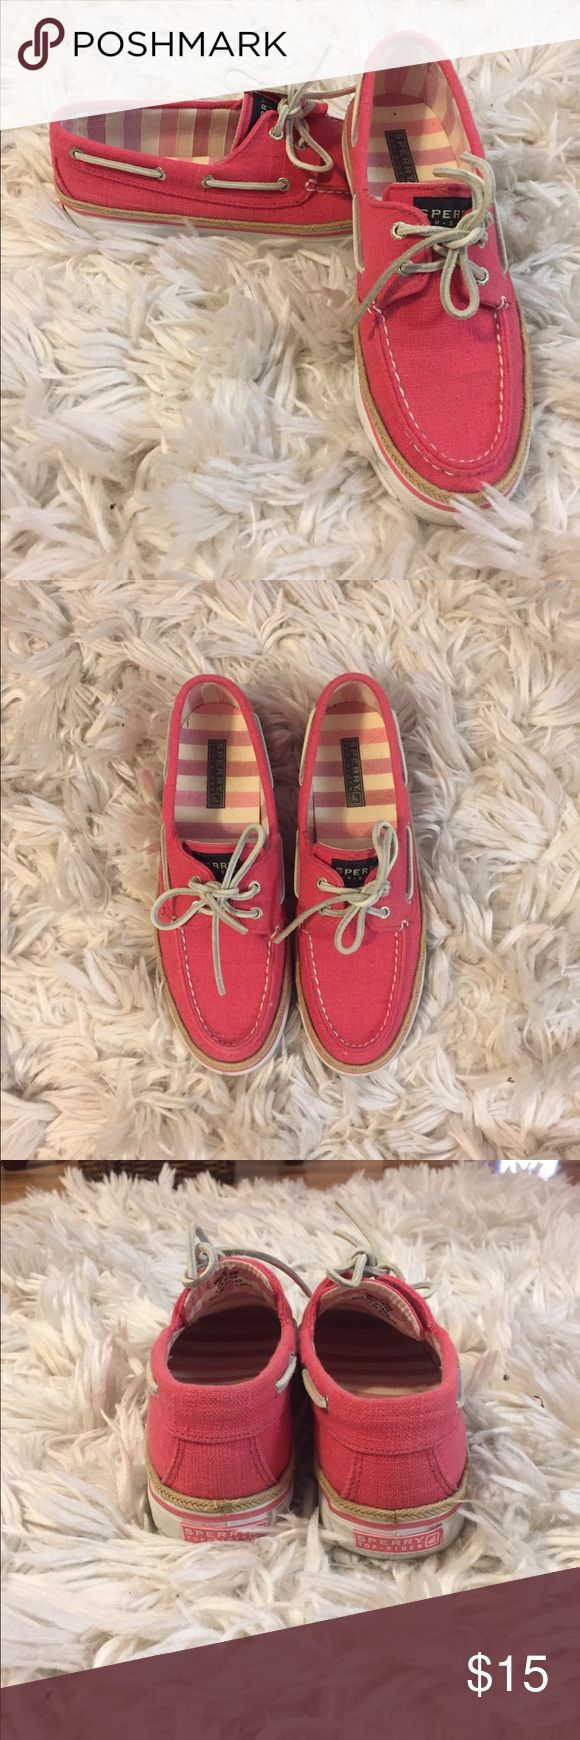 Pink Sperry Boat Shoes (cloth) Great condition cloth boat shoes. Worn maybe 3 times. Sperry Top-Sider Shoes Flats & Loafers